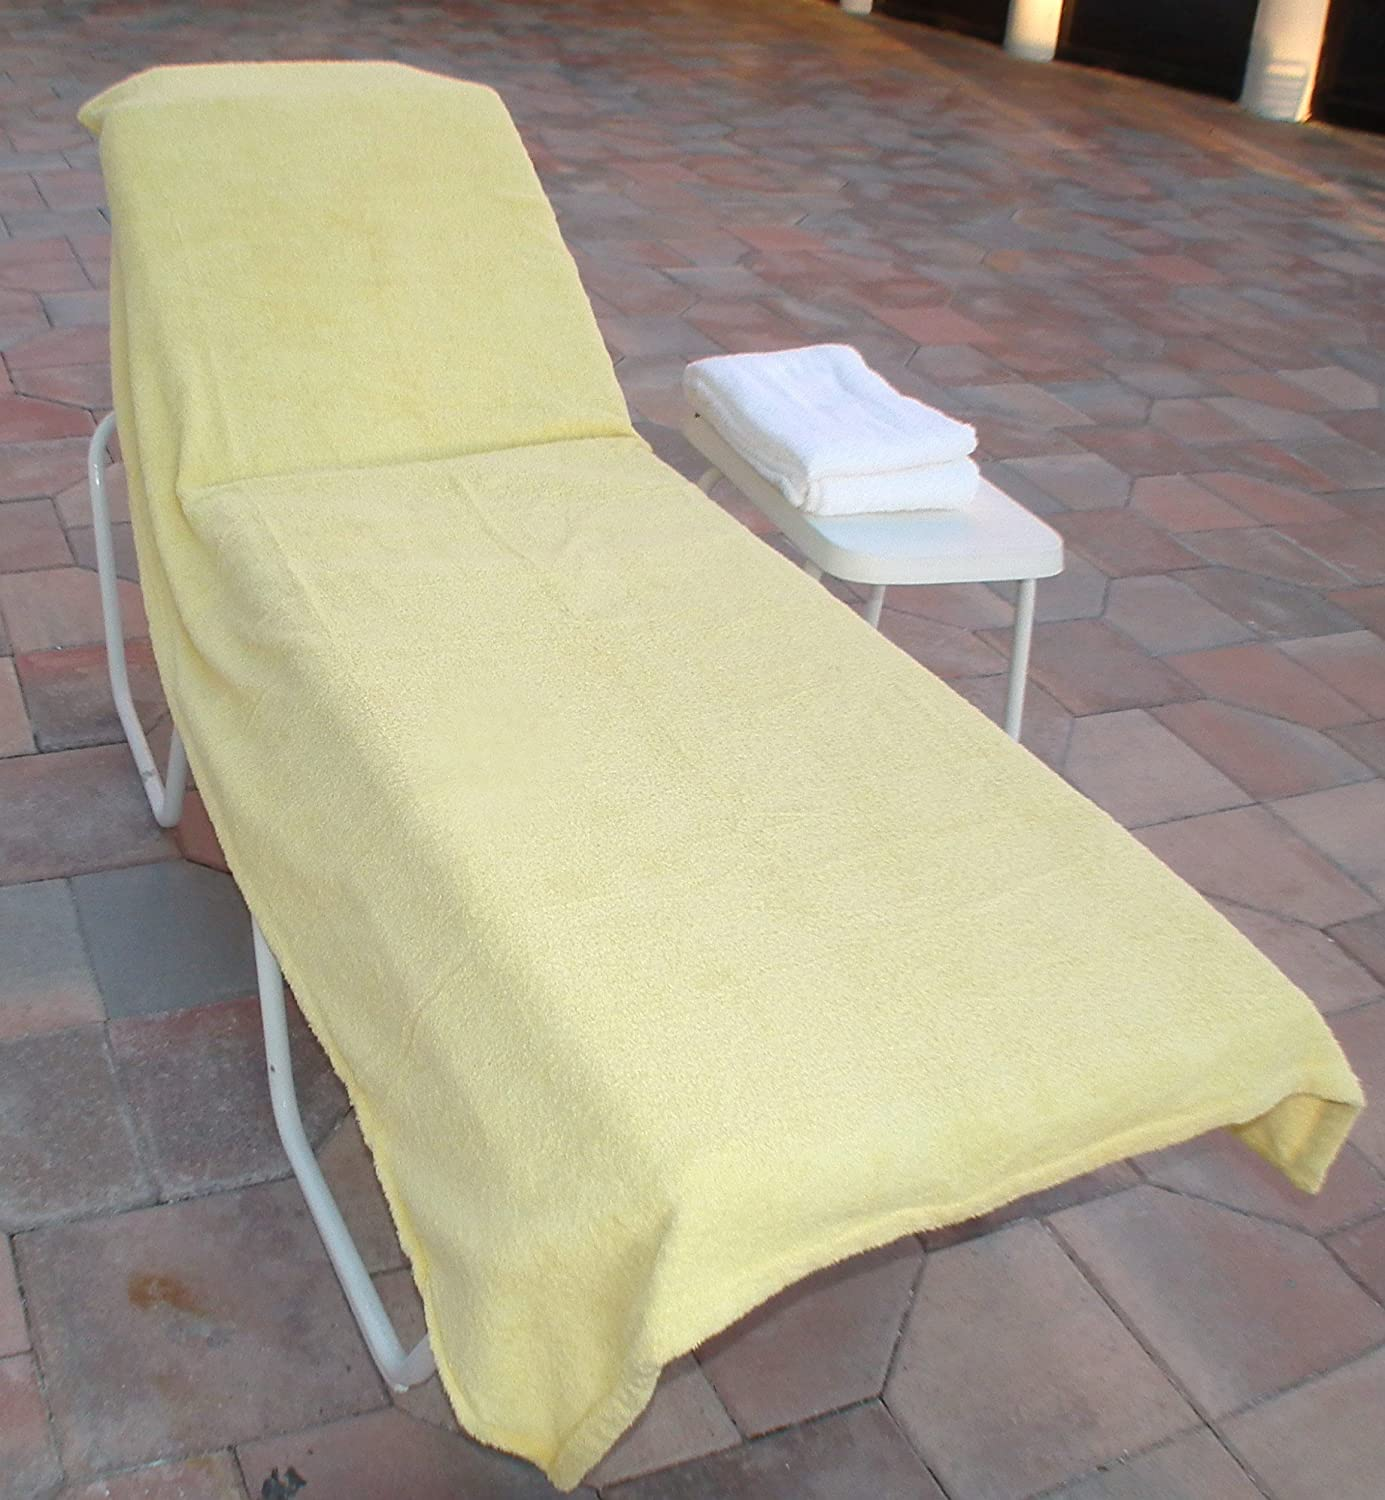 Amazon Lounge Chair Covers Wonder for Pool Spa Hotel yellow